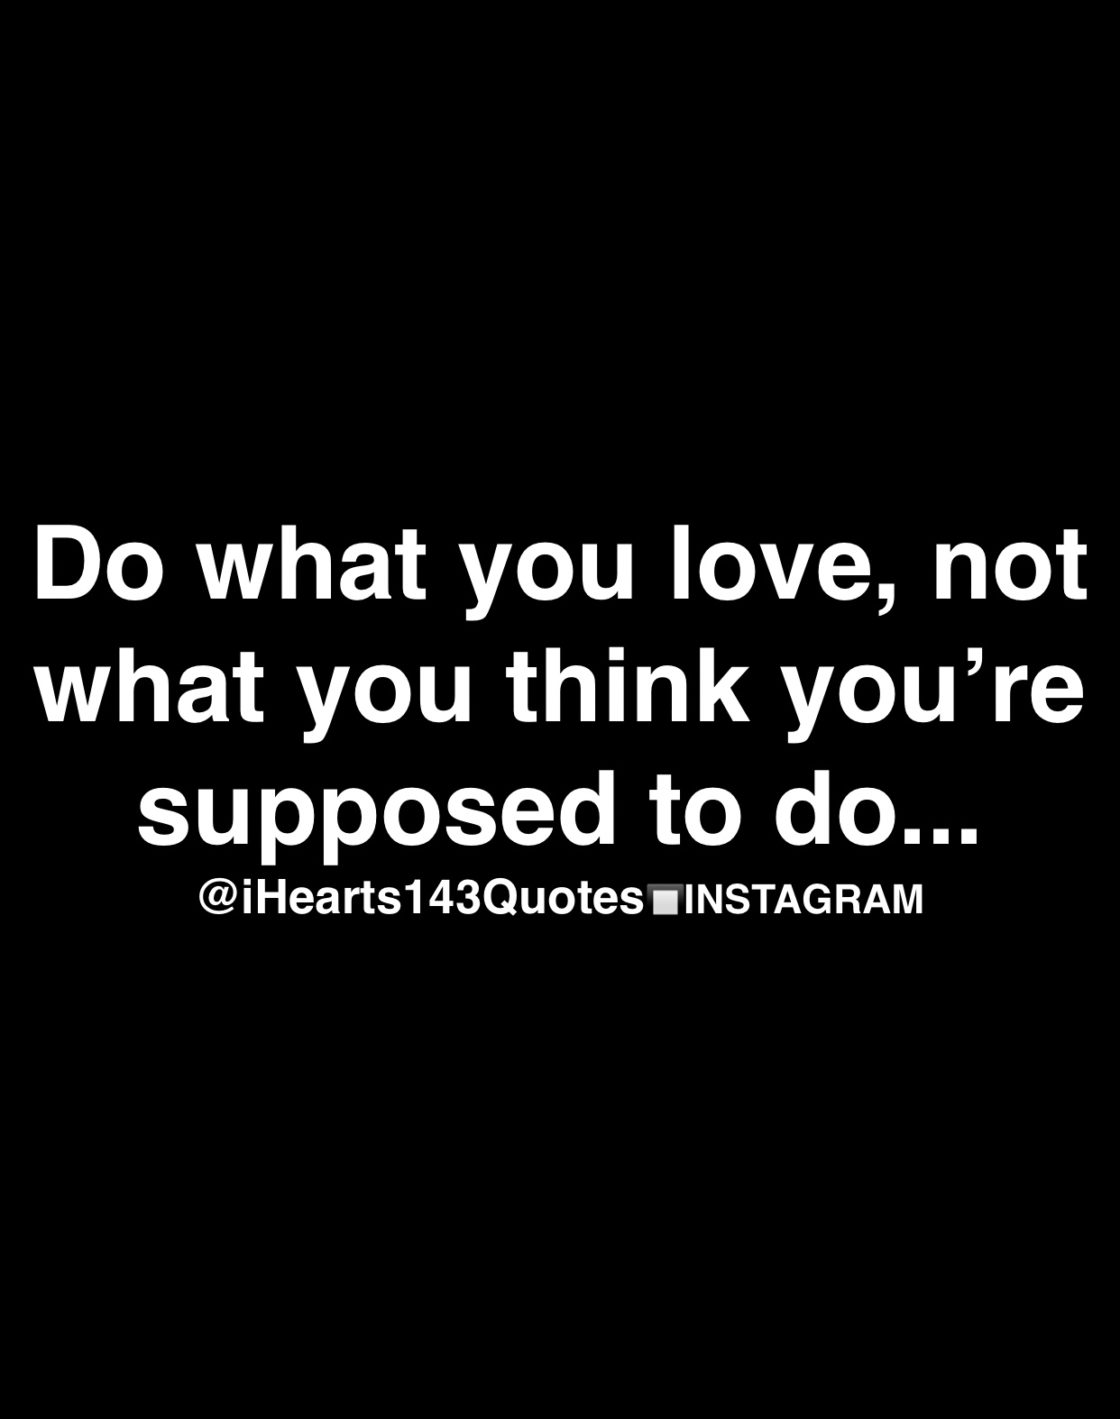 Daily Motivation Quotes Ihearts143quotes